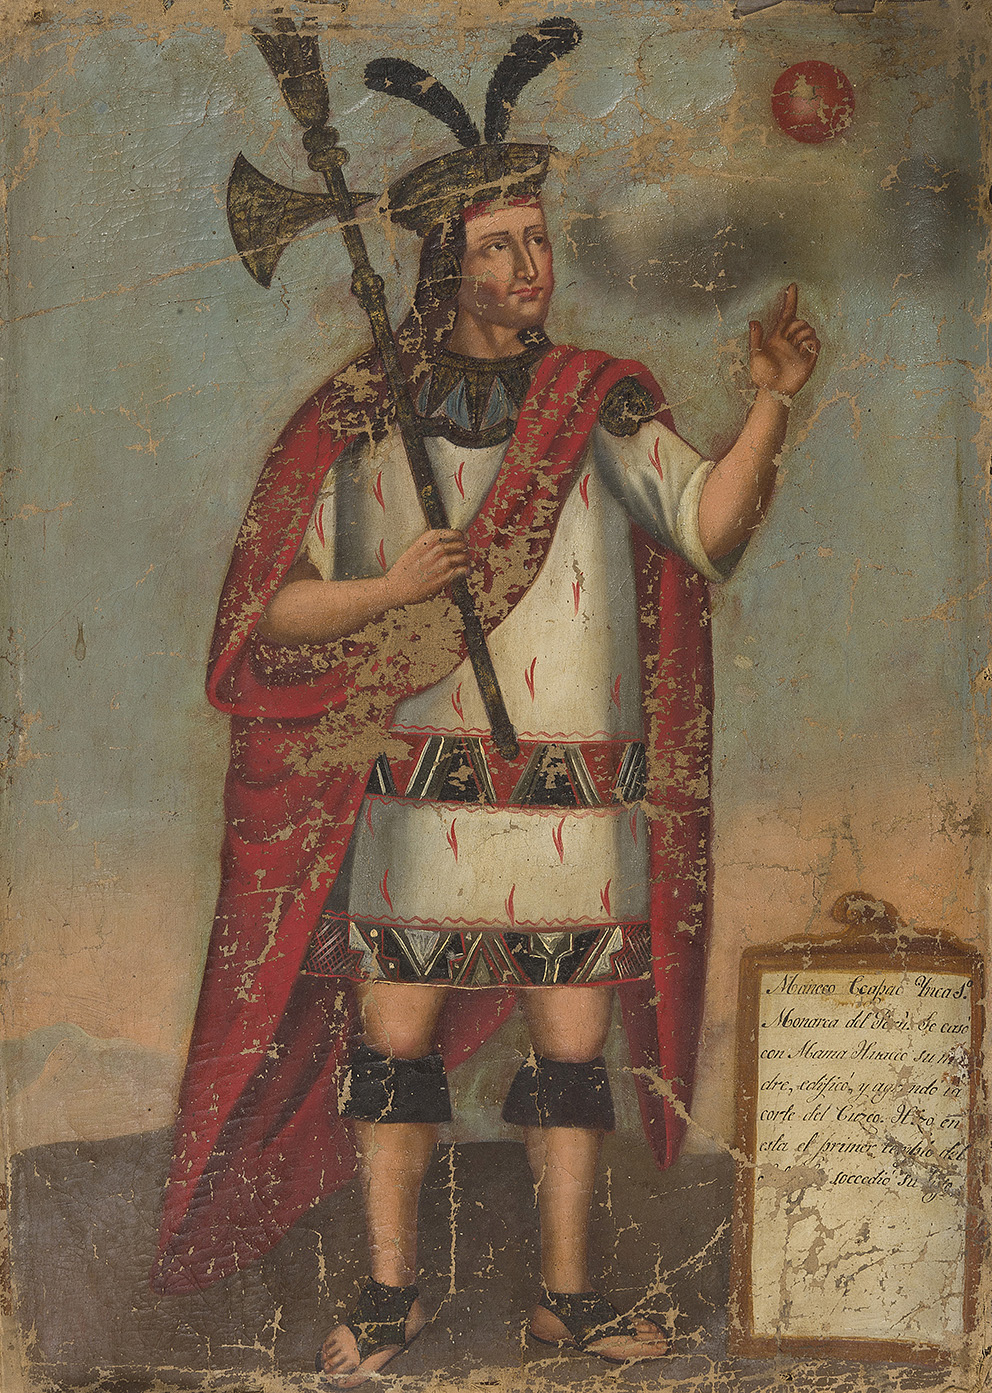 19th century South American school, Portraits of Inca emperors, series of eleven paintings, 55.5 x 41 cm.Result: €1,291,500